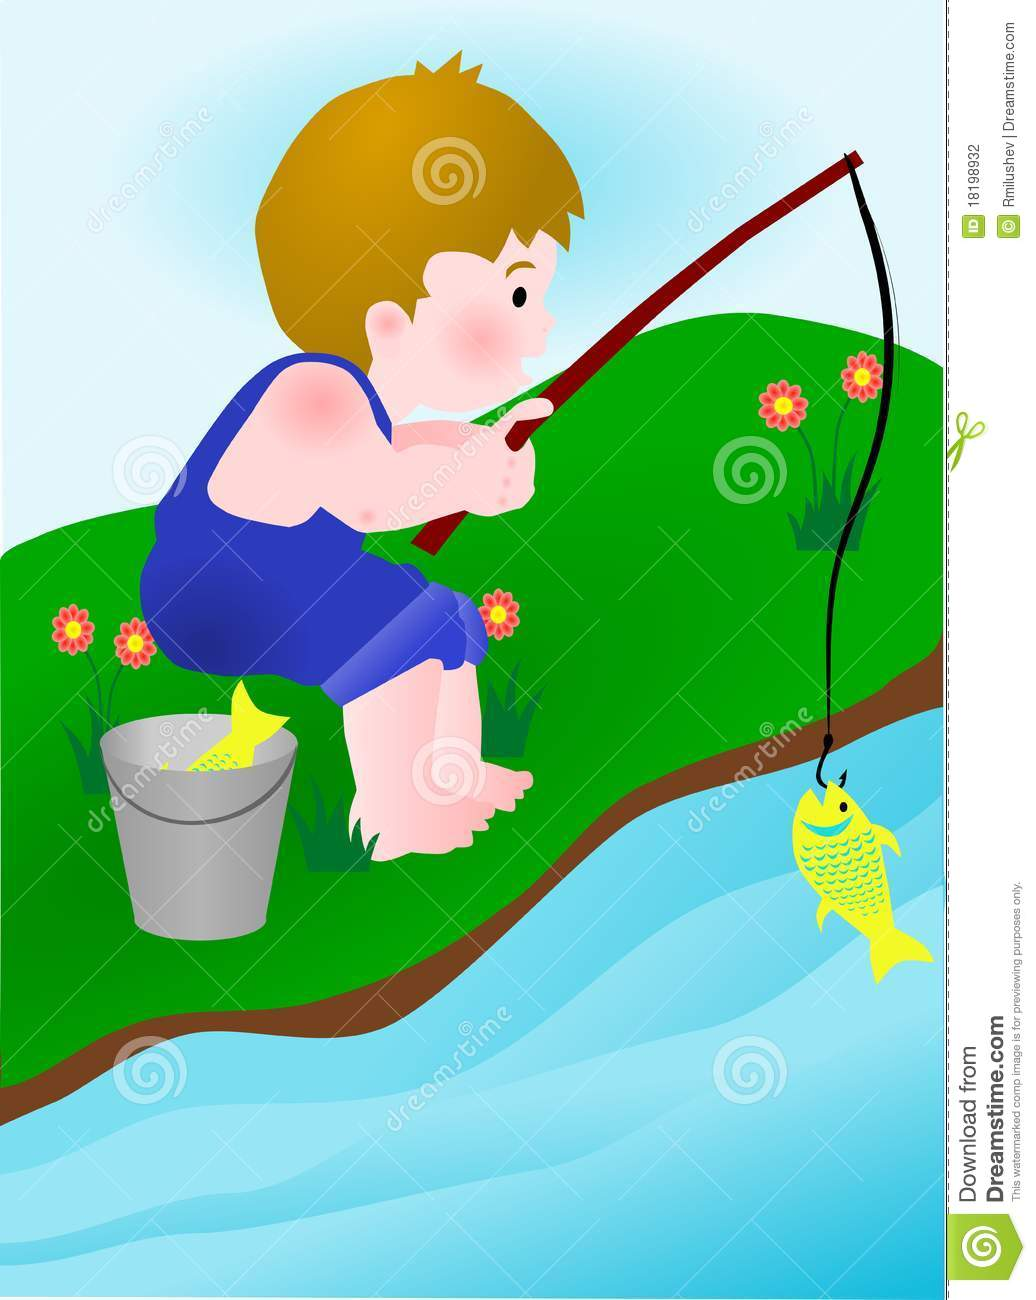 River fishing clipart - Clipground